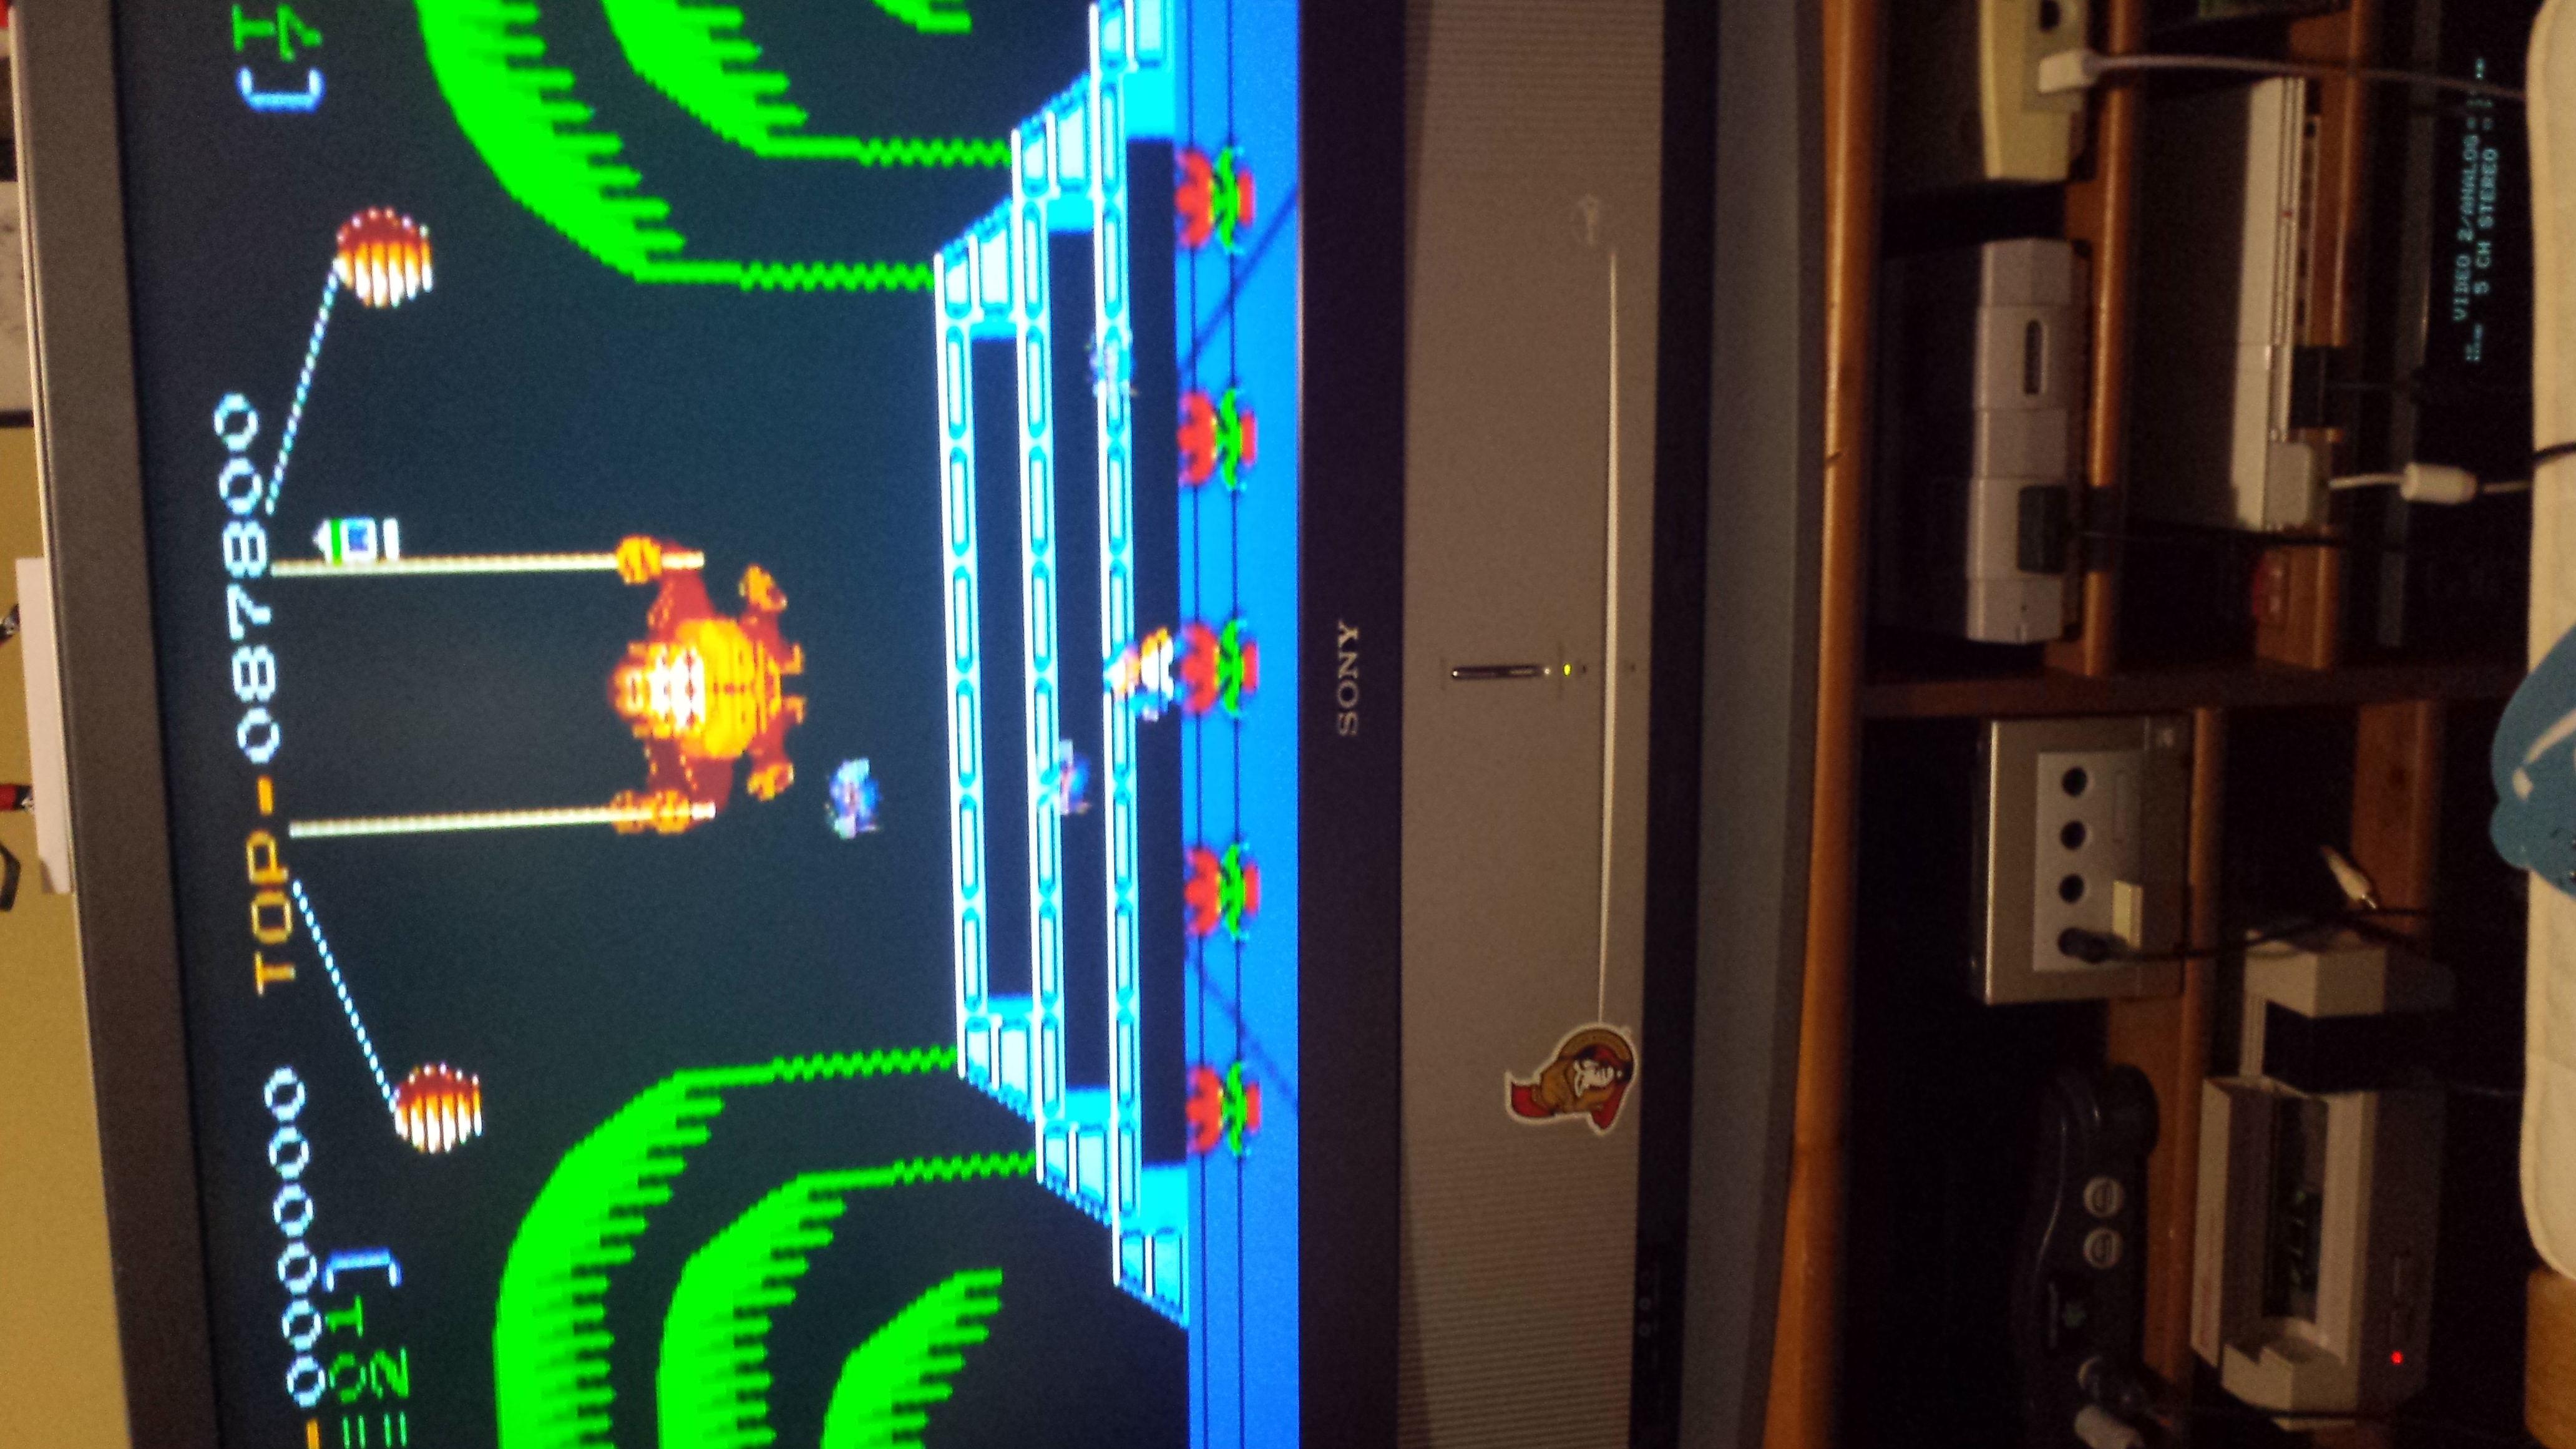 Donkey Kong 3: Game A 87,800 points